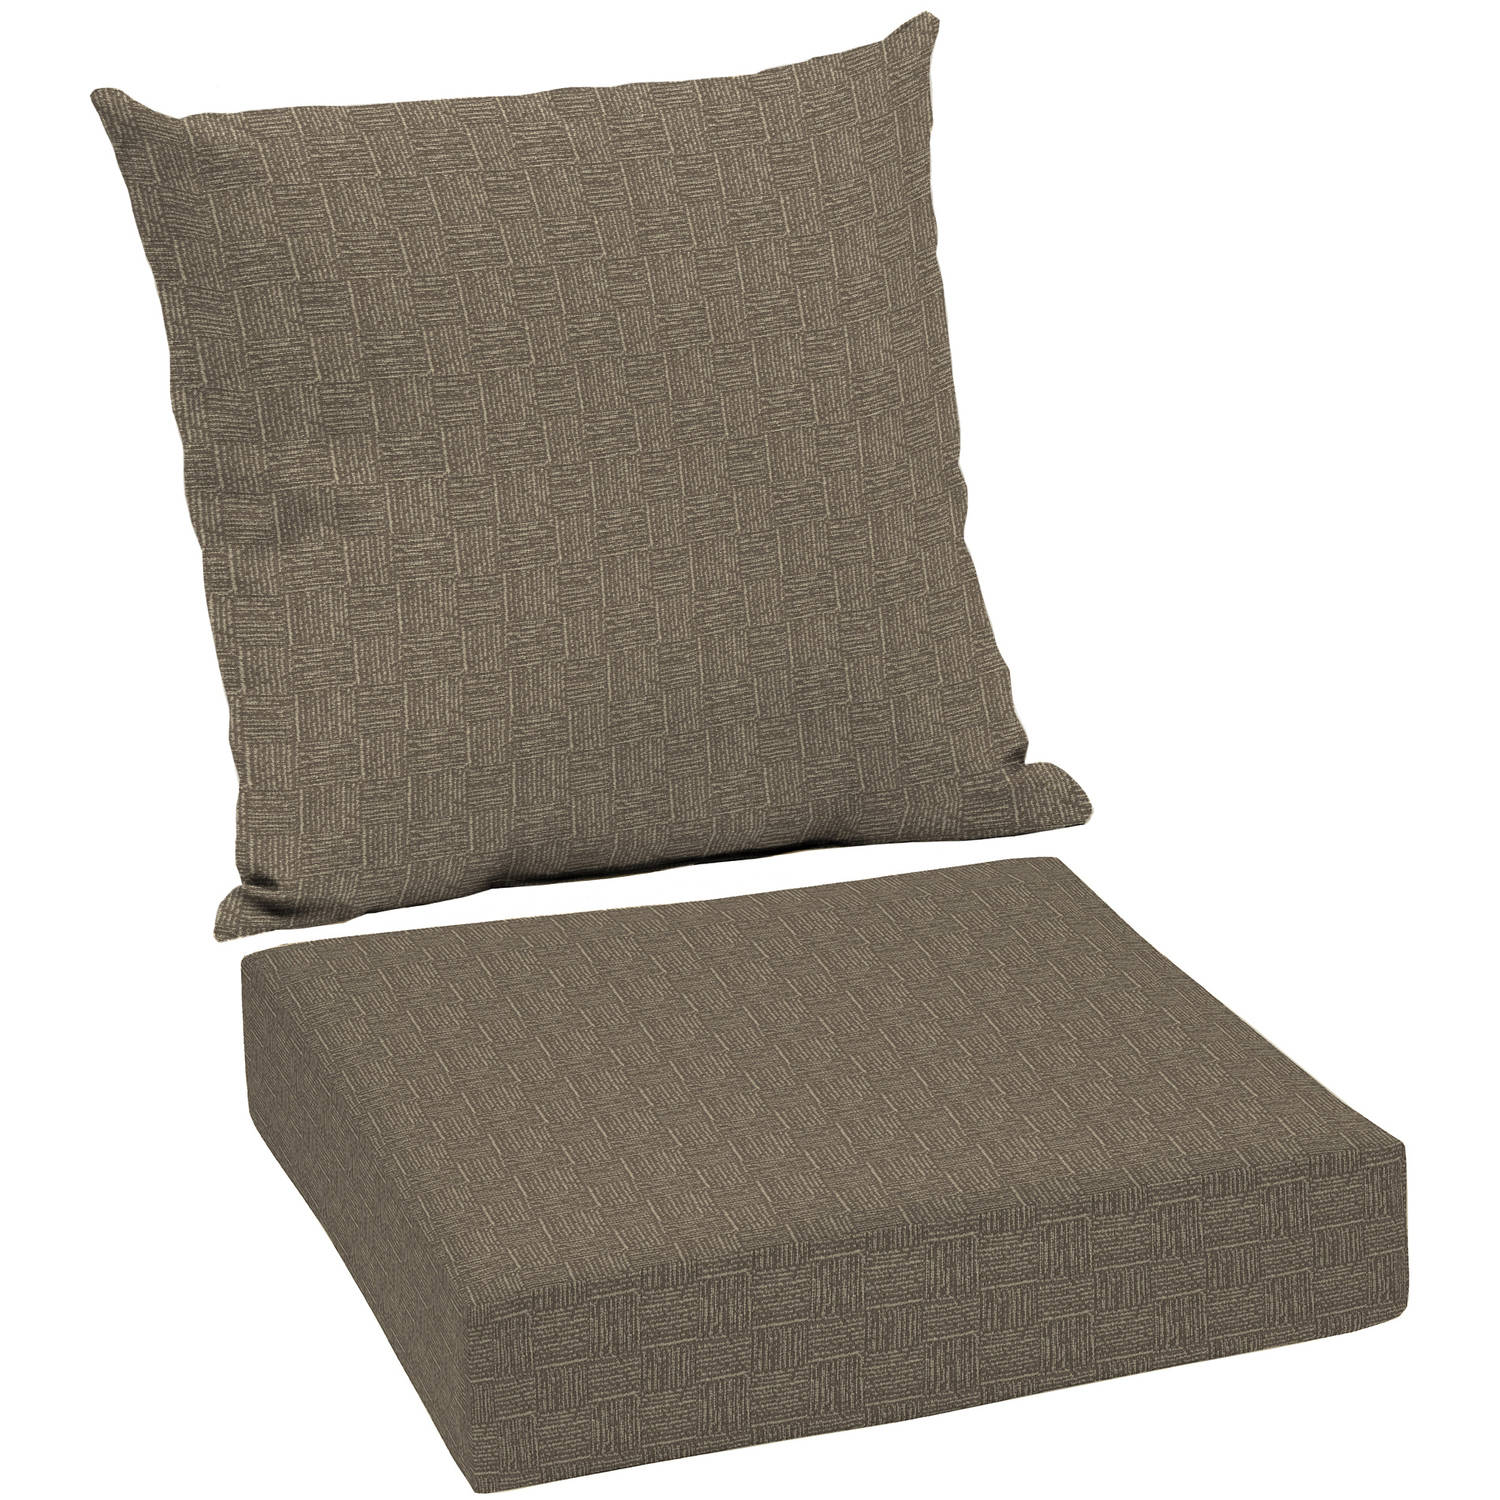 48 high back outdoor chair cushions without backrest blazing needles floral 72 inch spun poly chaise